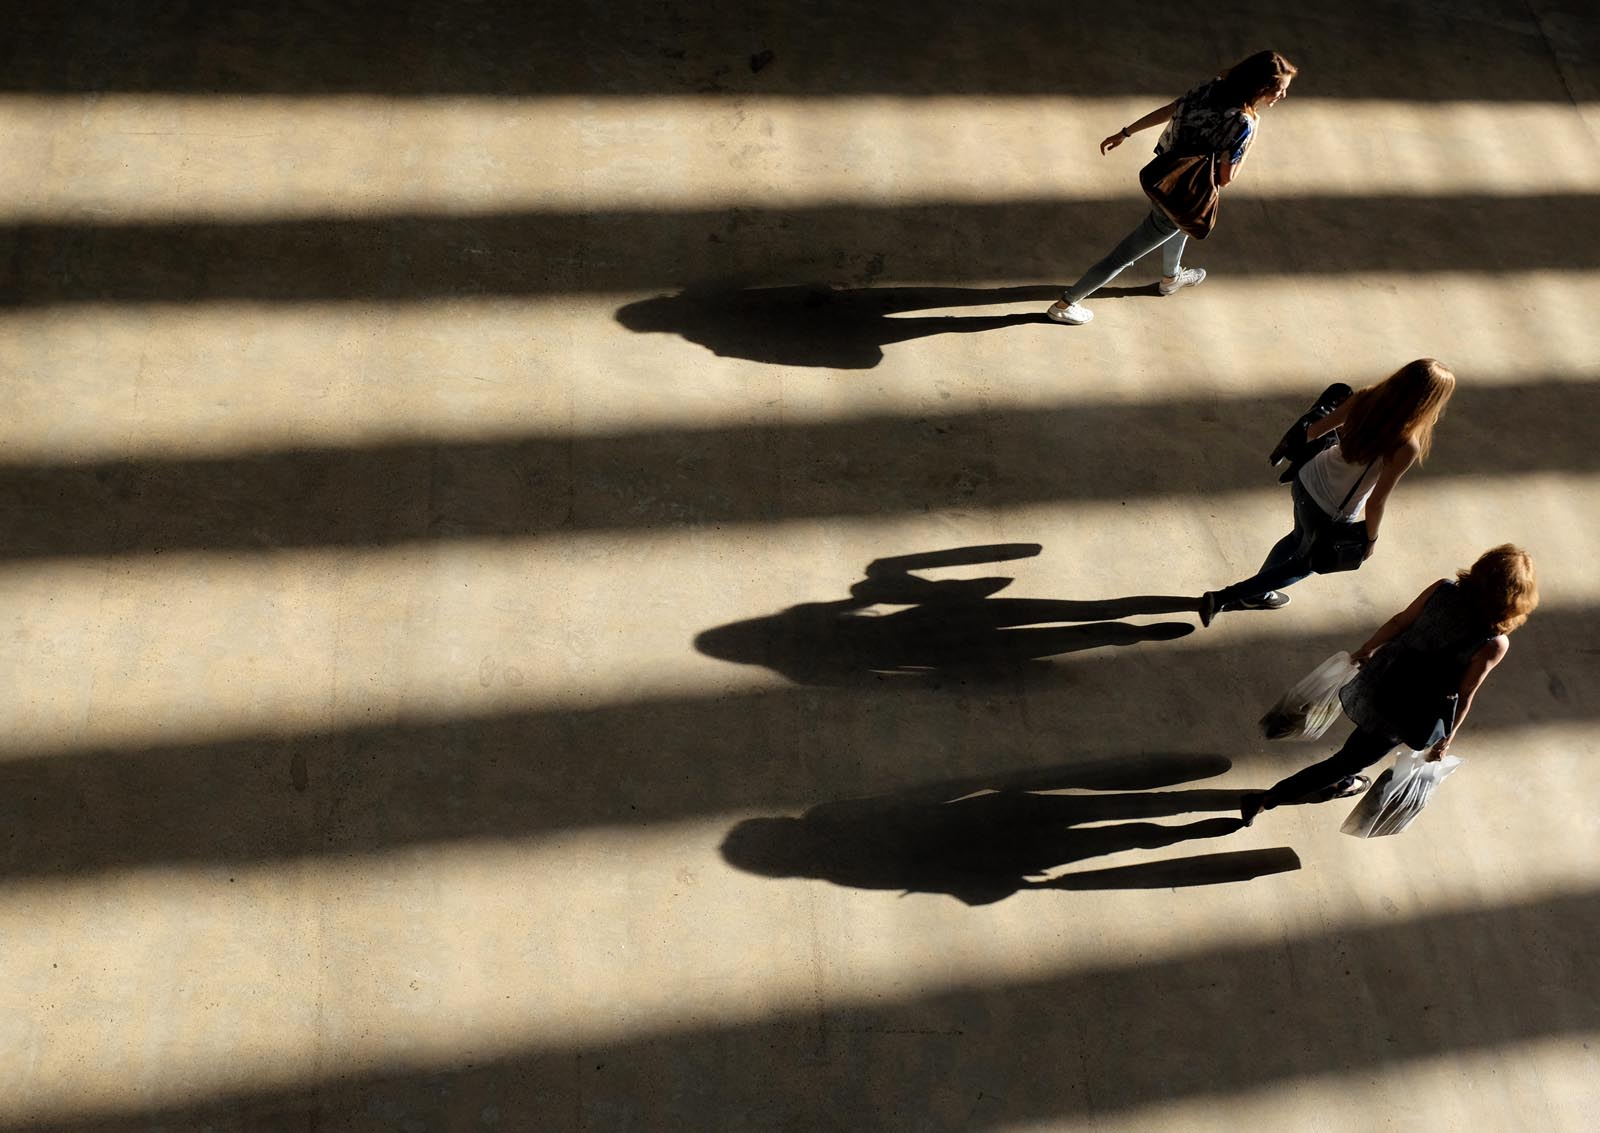 Shadows in the Turbine Hall, Tate Modern